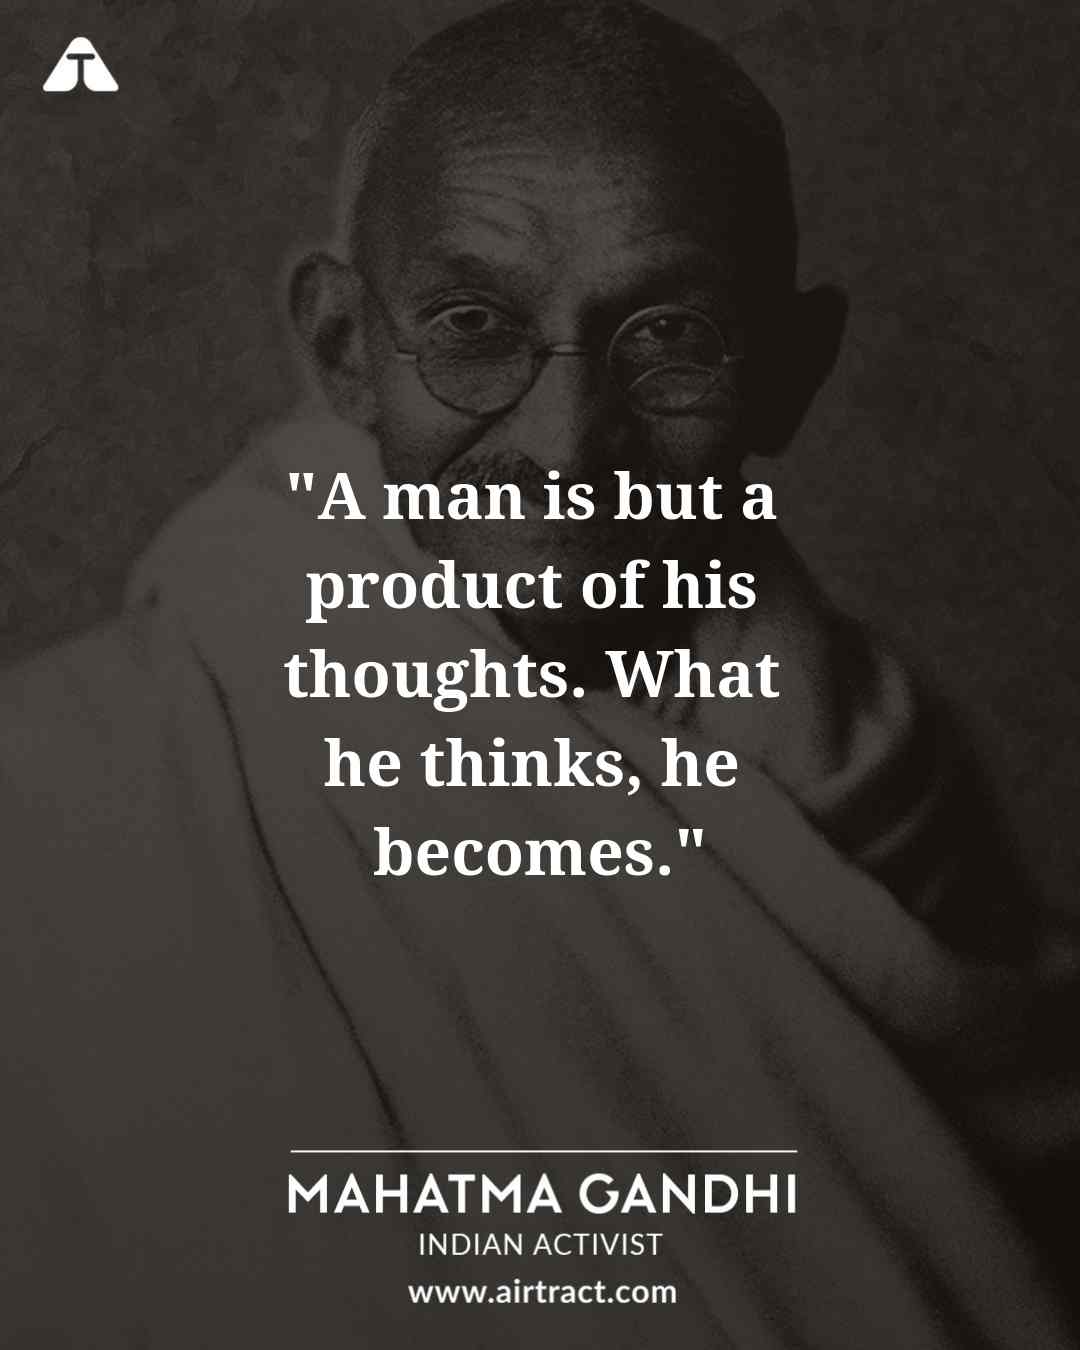 20 Inspiring Mahatma Gandhi Quotes On Peace Courage And Freedom